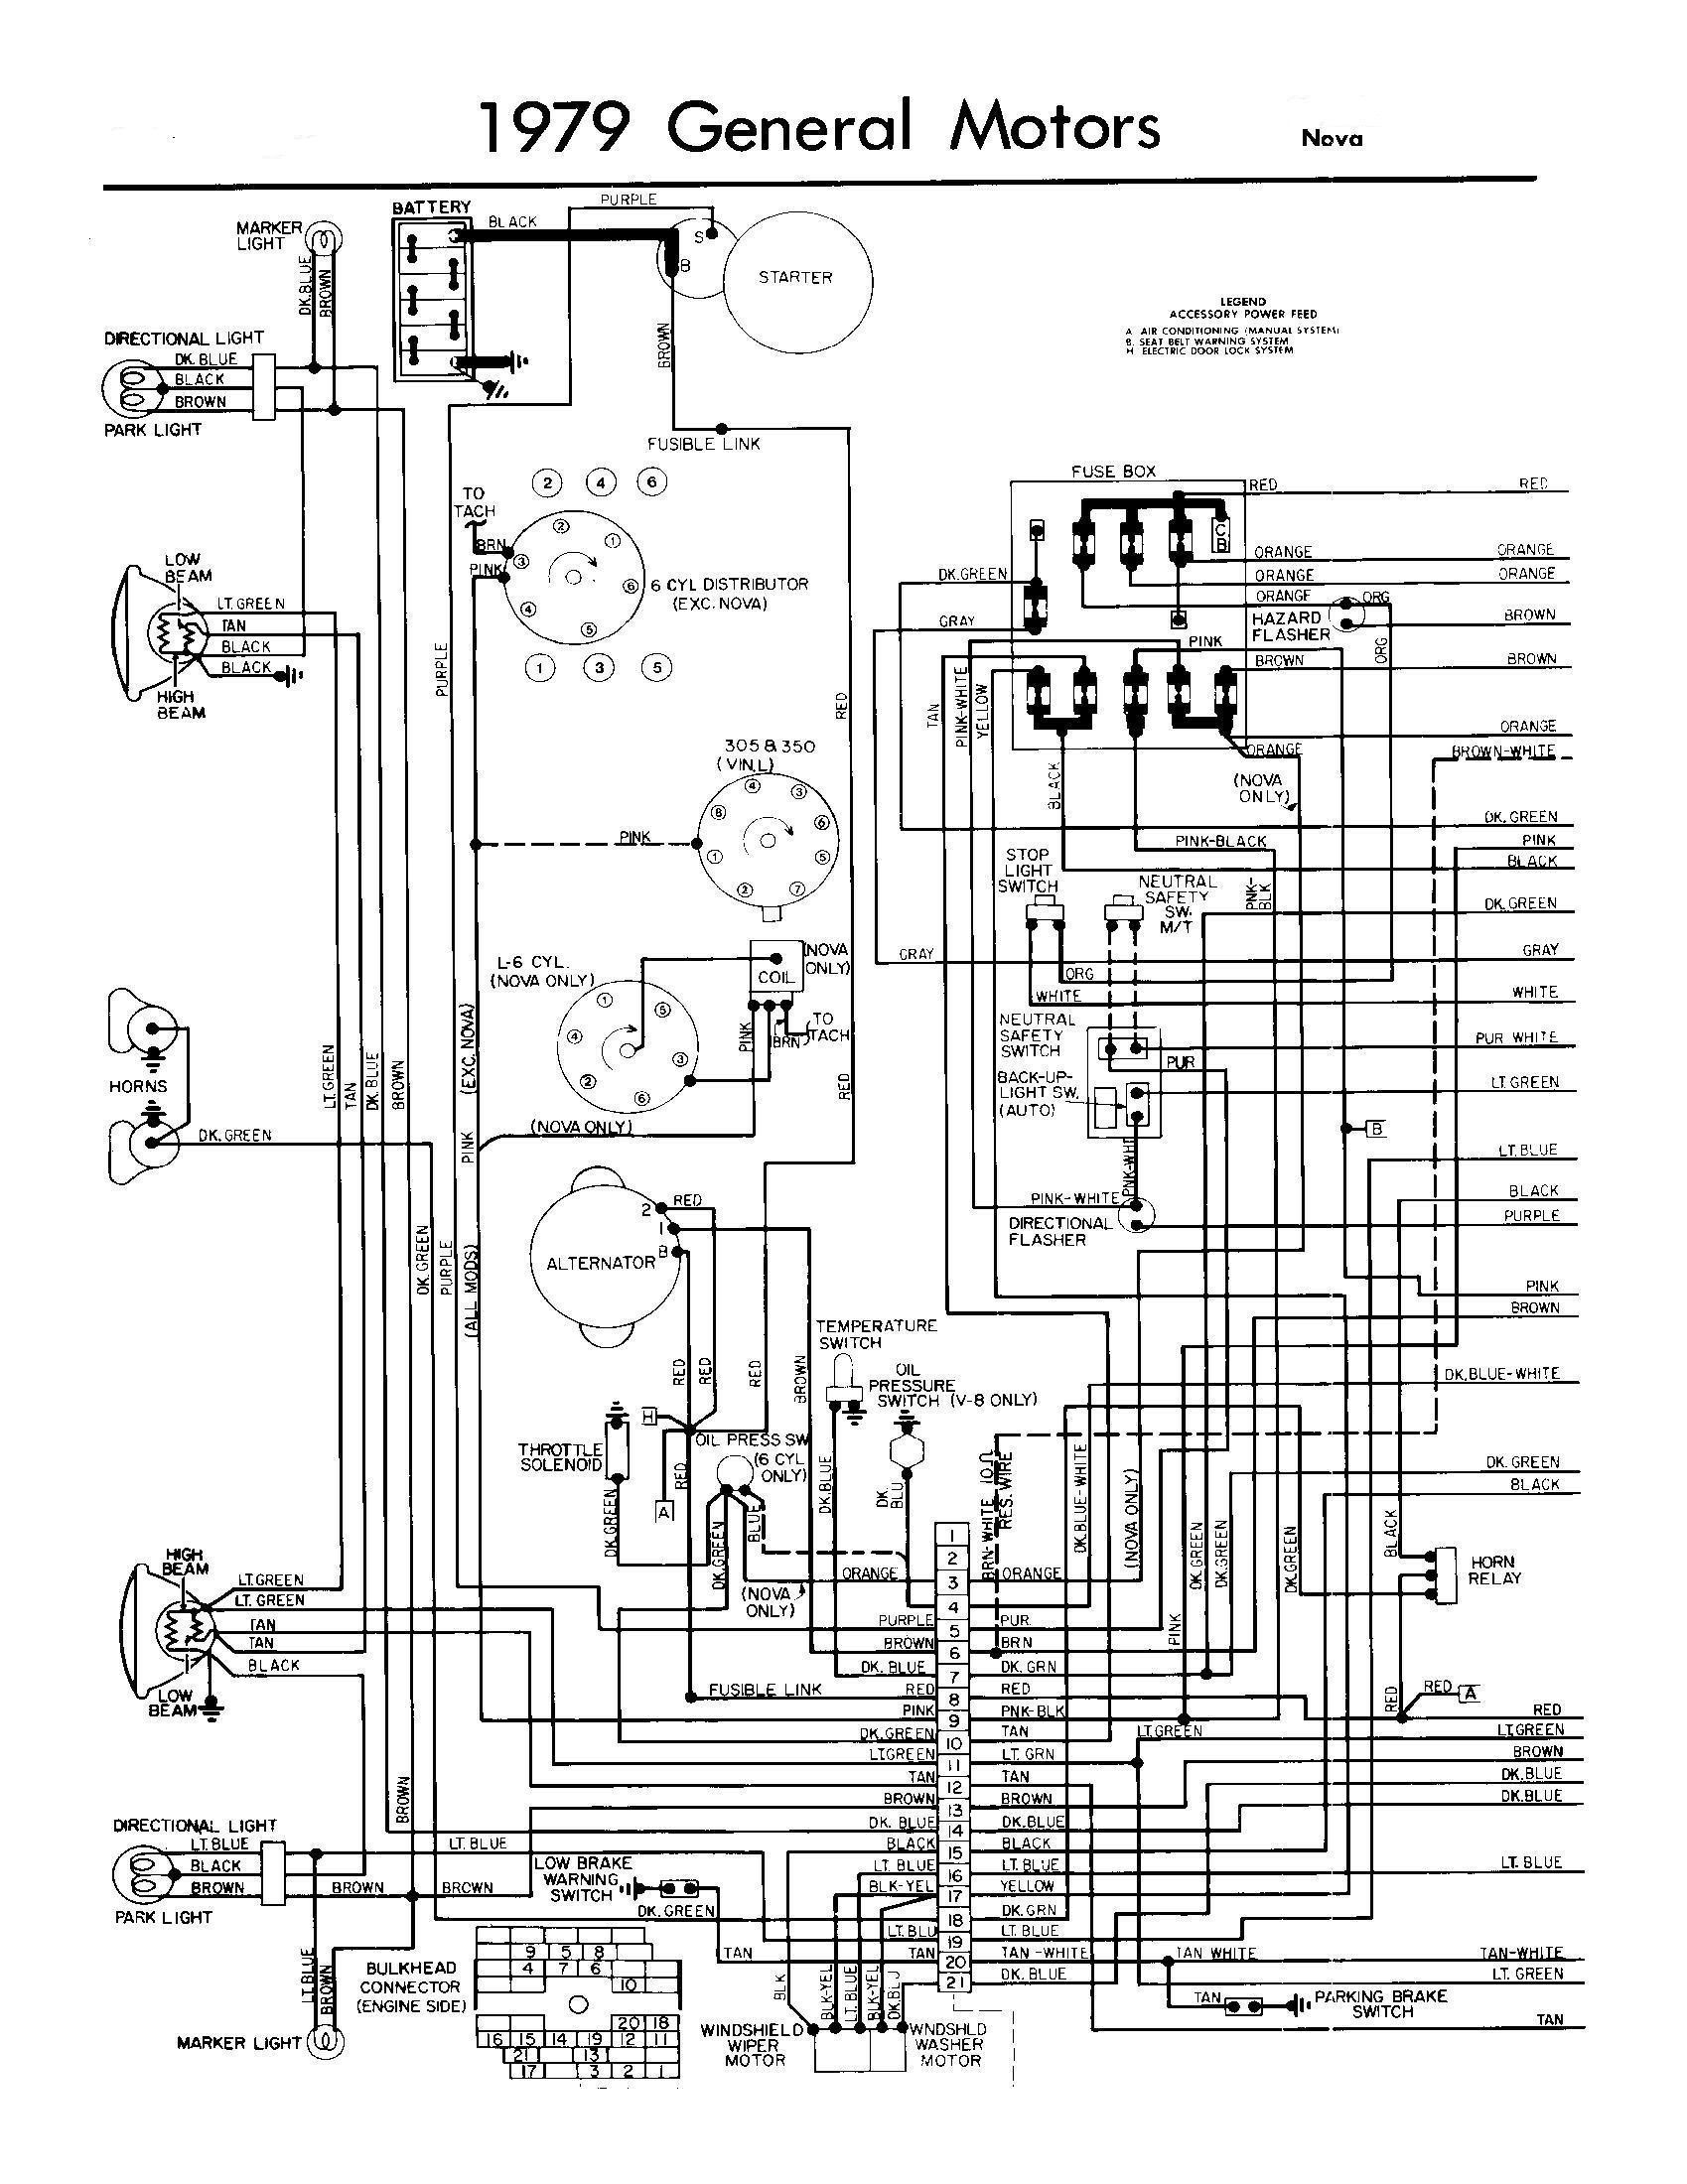 Chevy 350 Distributor Diagram On Hei Distributor Wiring Diagram Chevy